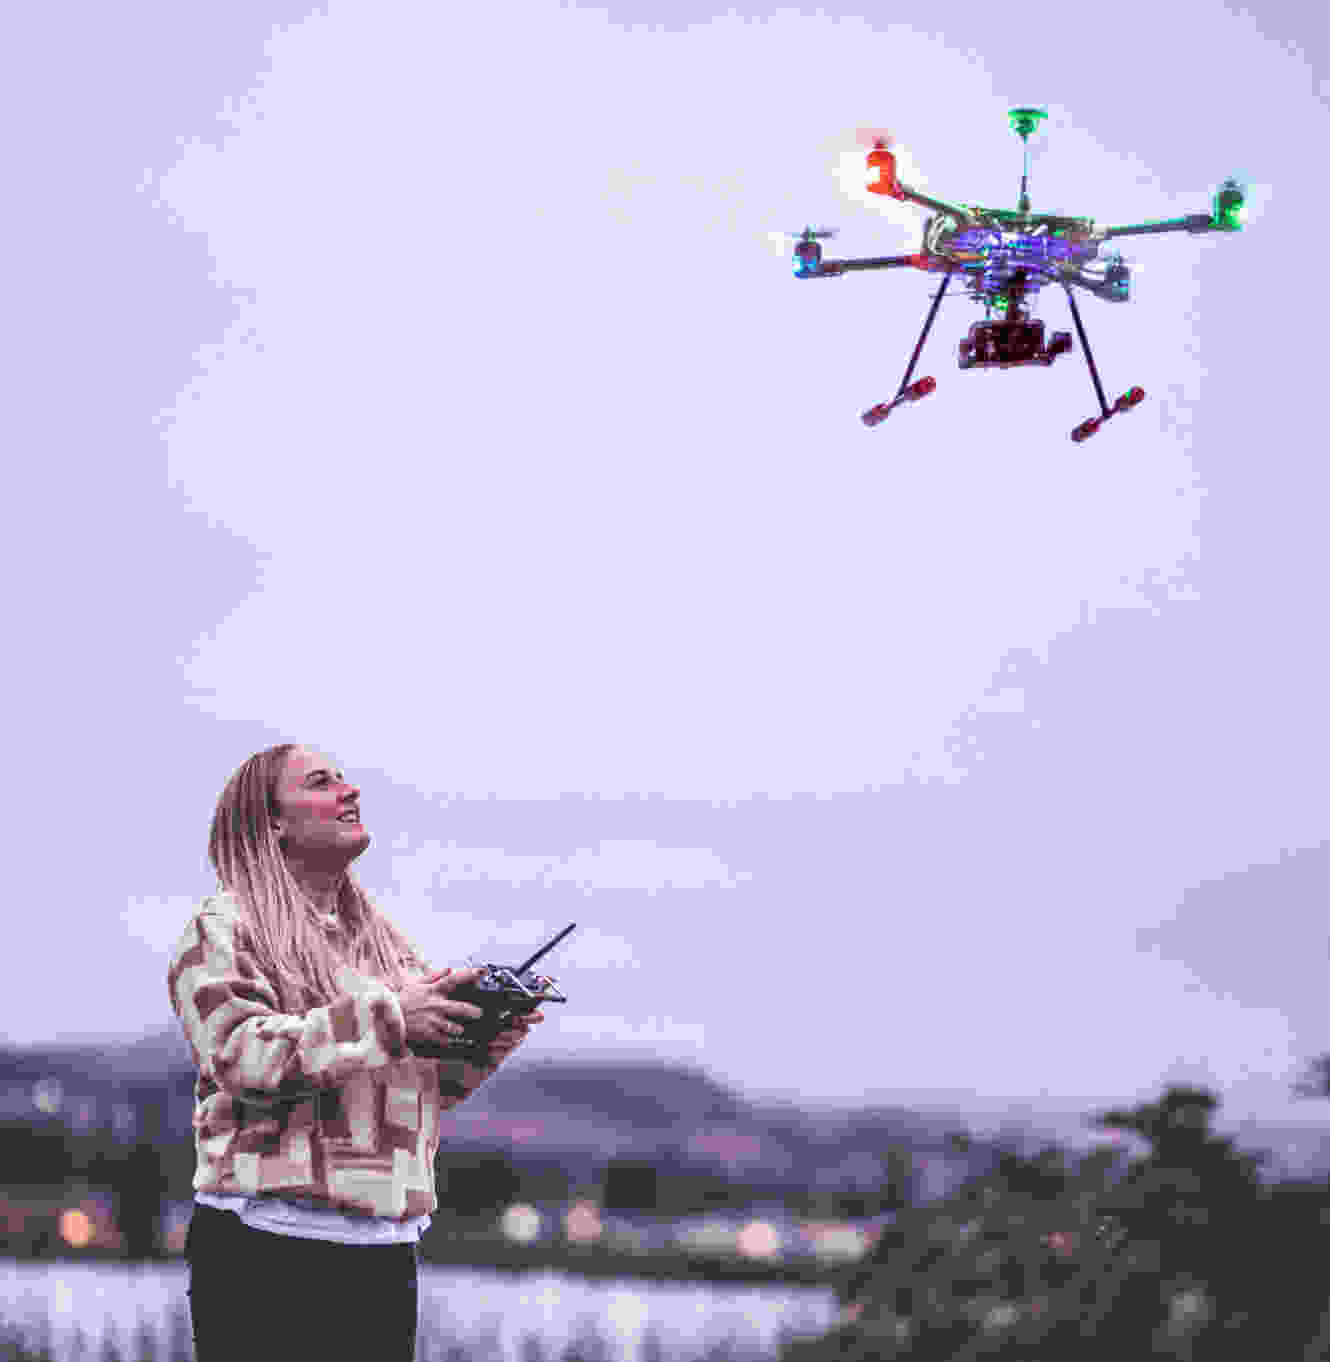 drones, drone, drone pilot, commercial drone, inspired flight